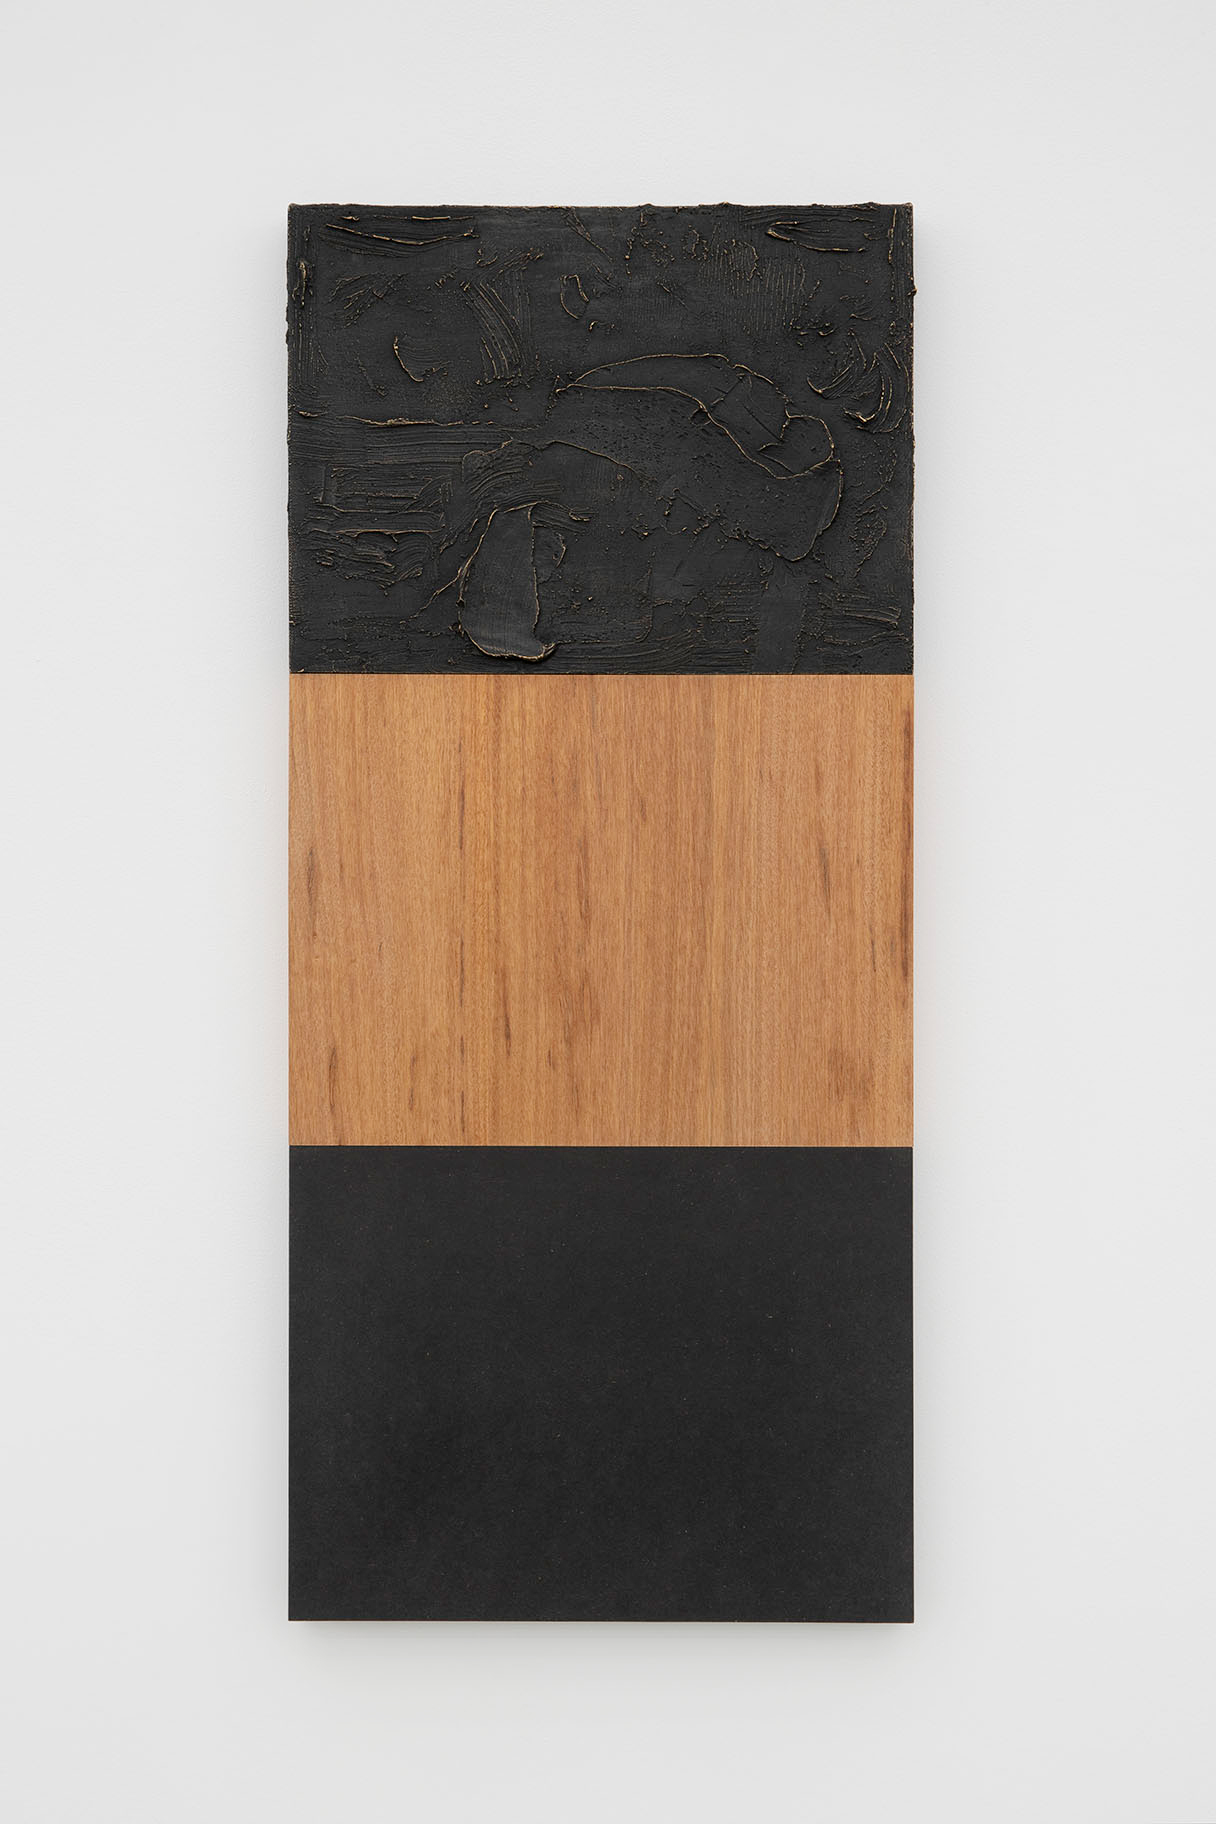 Floor, Wall, Ceiling , 2012/2019, patinated brass, anigre wood, colored MDF, 36 x 15 inches (91.5 x 38 cm)